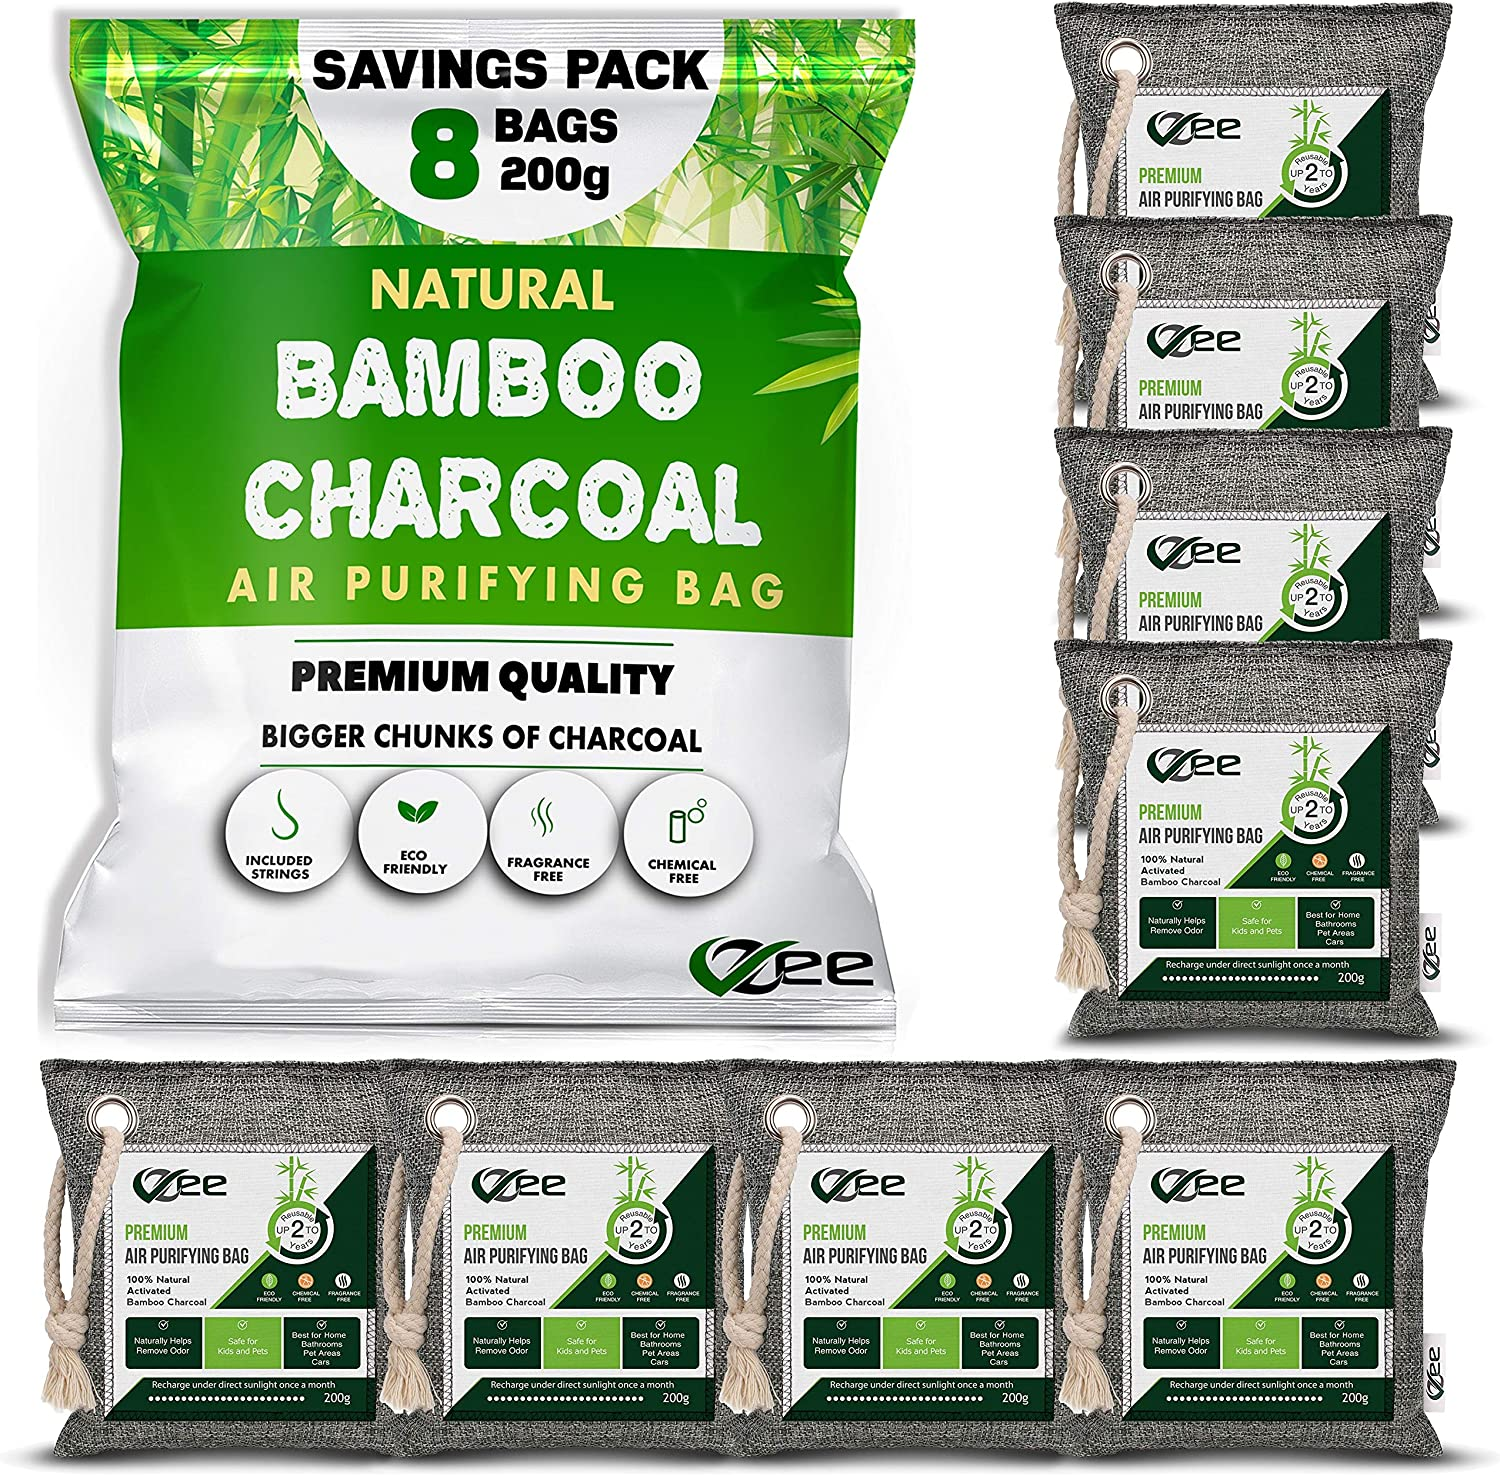 VZee Odor Eliminator, Activated Charcoal Bags Odor Absorber, 8 Pack x 200g, 8 Cords, Ziplock Packaging, Nature Fresh Bamboo Charcoal Air Purifying Bag, Odor Absorbers for Home, Bamboo Charcoal Bags, Deodorizers for Home, Pet, Shoe, Car, Closet, Smoke, Carpet, Fridge, Dogs, Cats, Basements, Musty Smell, New Car Smell, Bamboo Charcoal Bags, Odor Neutralizer, Strong Odor Remover